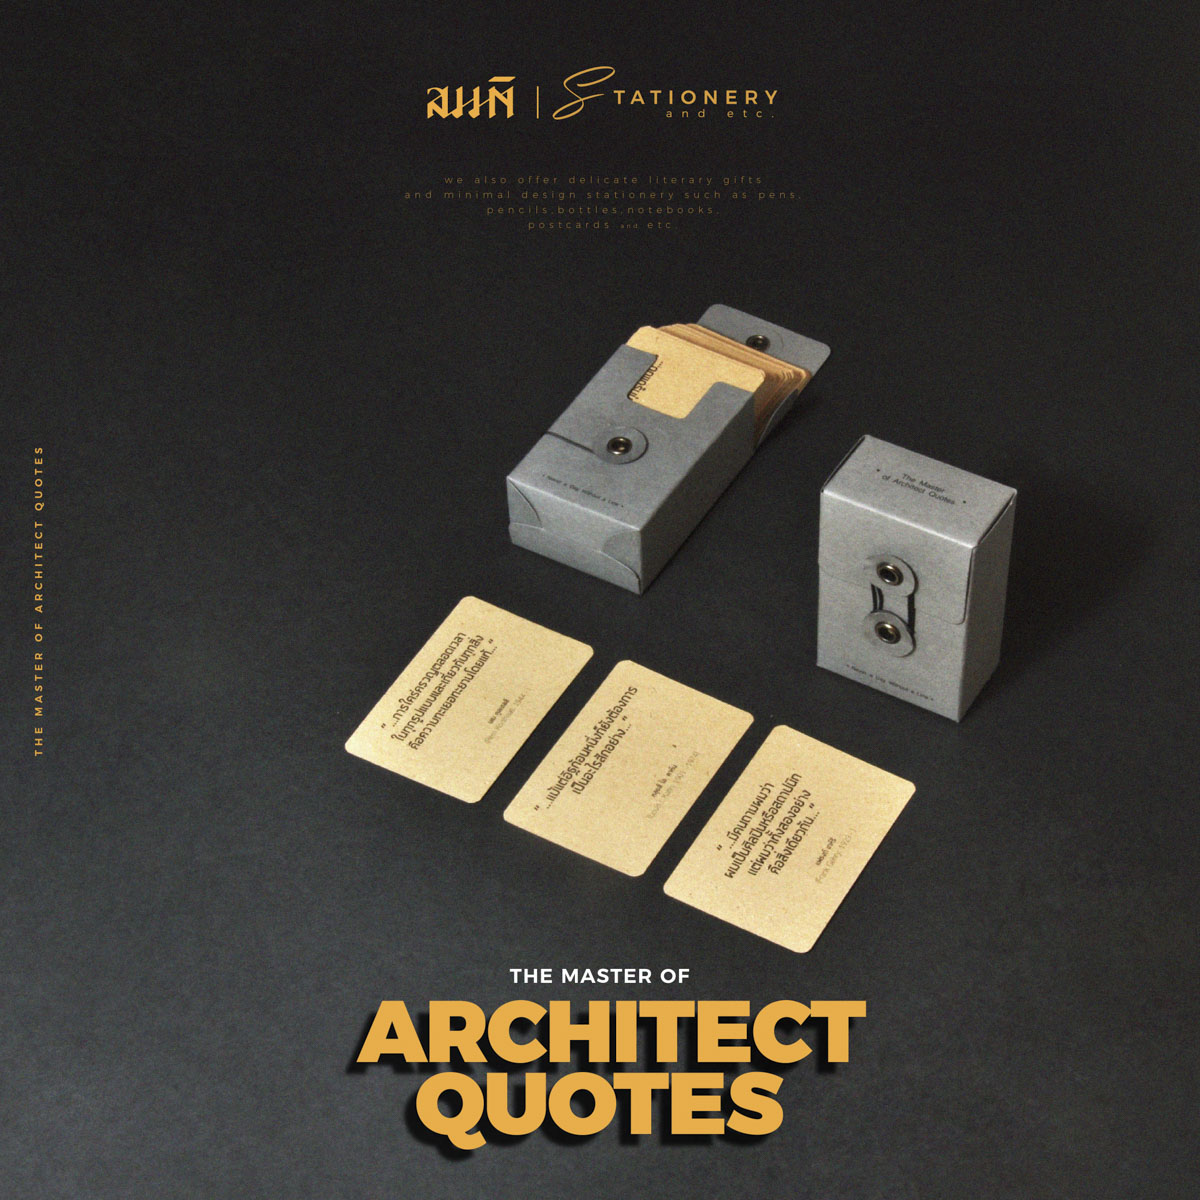 The Master of Architect Quotes